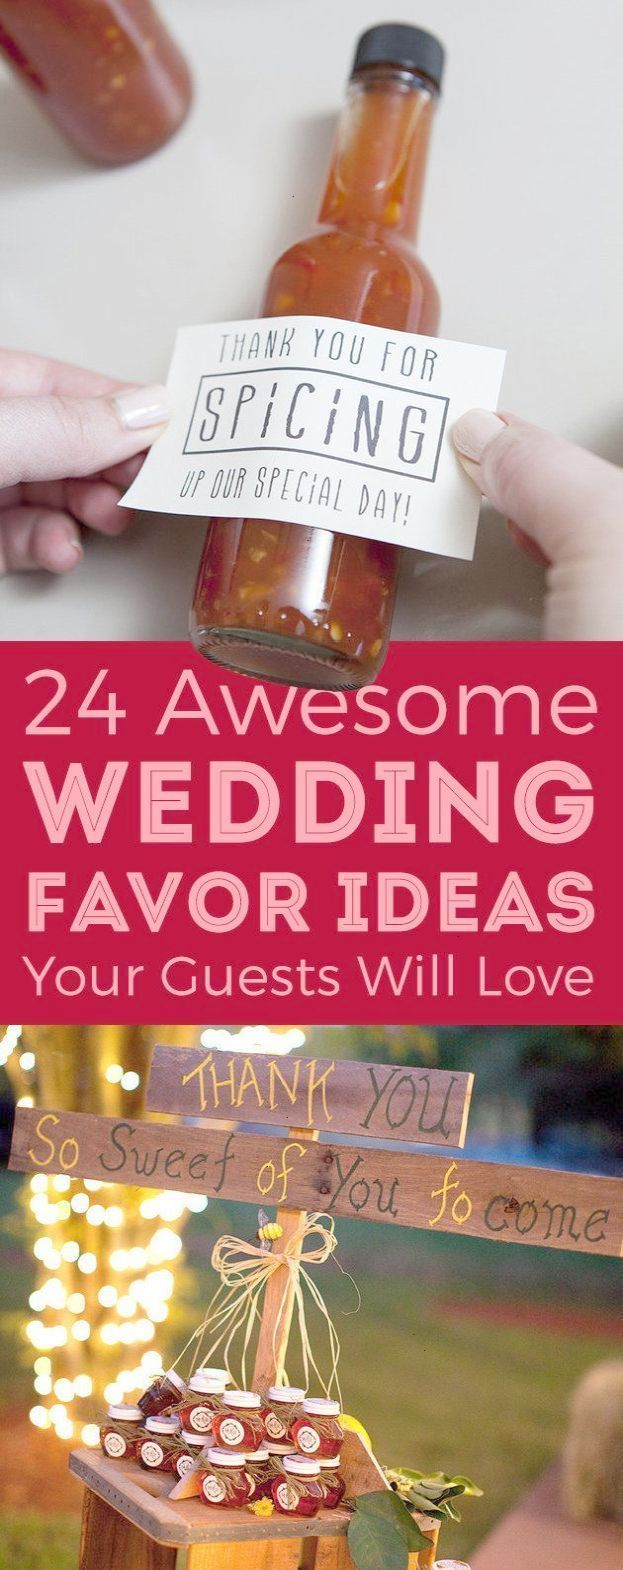 Wedding favor ideas that don\'t suck! Most involve food and alcohol ...